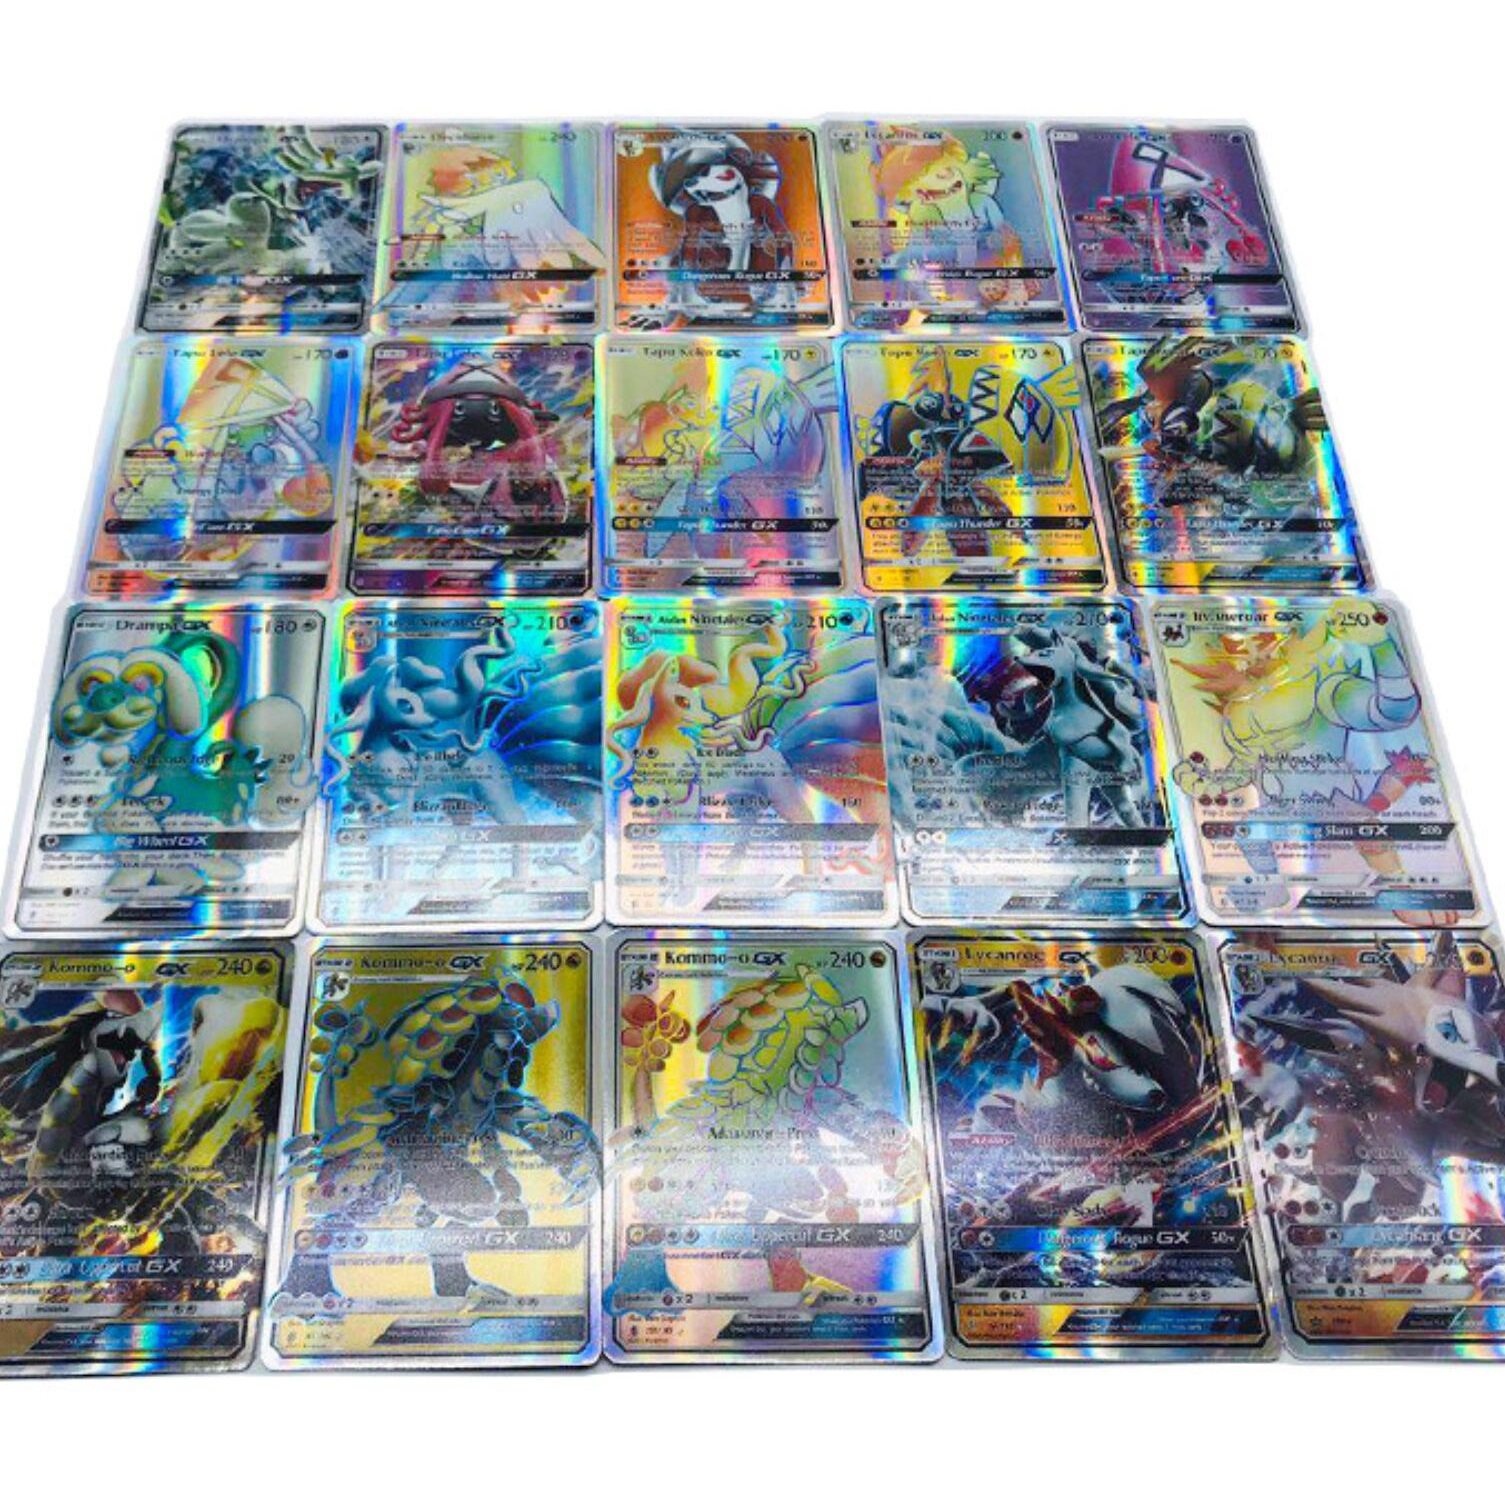 No Repeat 200 Pcs For Carte Cards GX Shining Game Battle Carte Card Game For Children Toy(China)